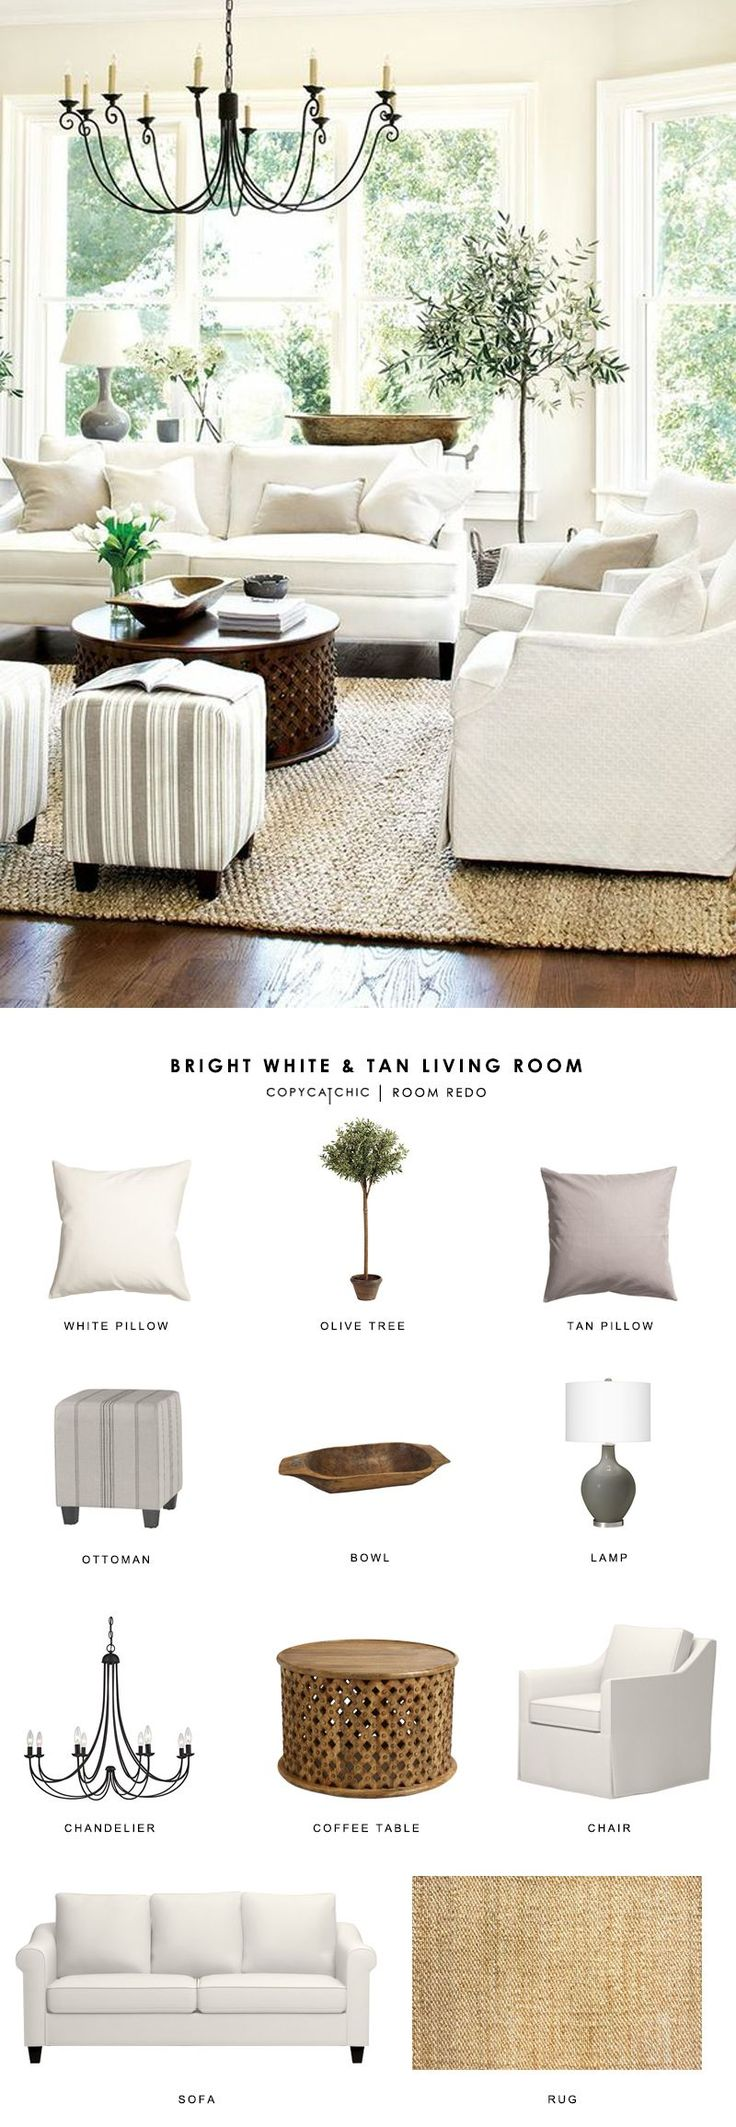 Tan Living Room Furniture 25 Best Ideas About Tan Living Rooms On Pinterest Sofa For Room